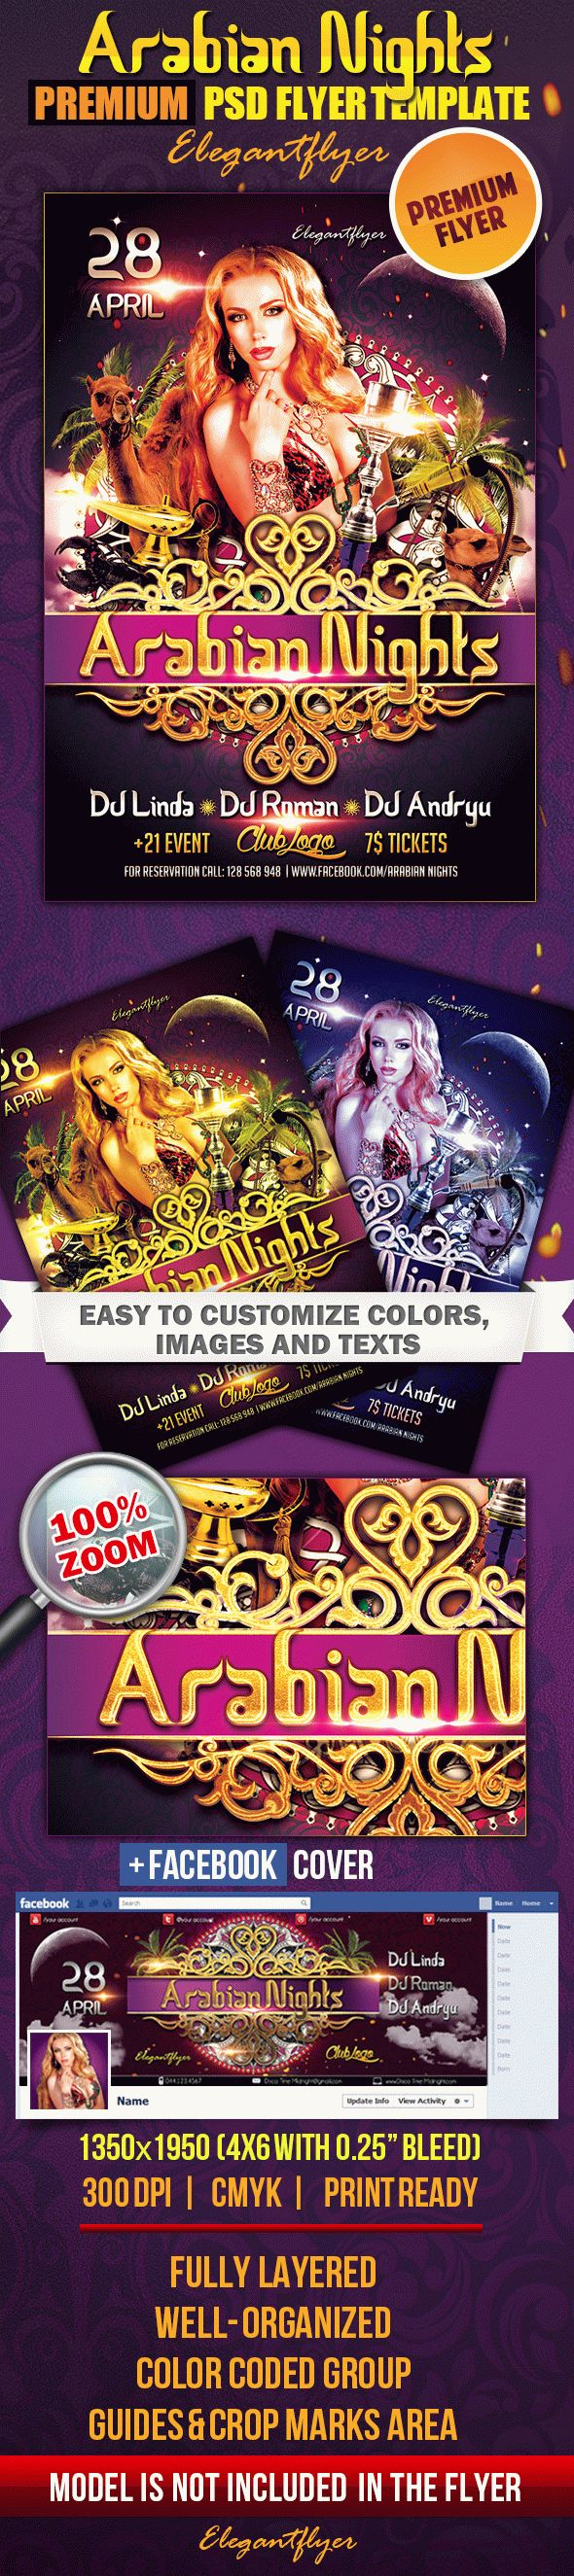 Arabian Nights – PSD Flyer Template + Facebook Cover